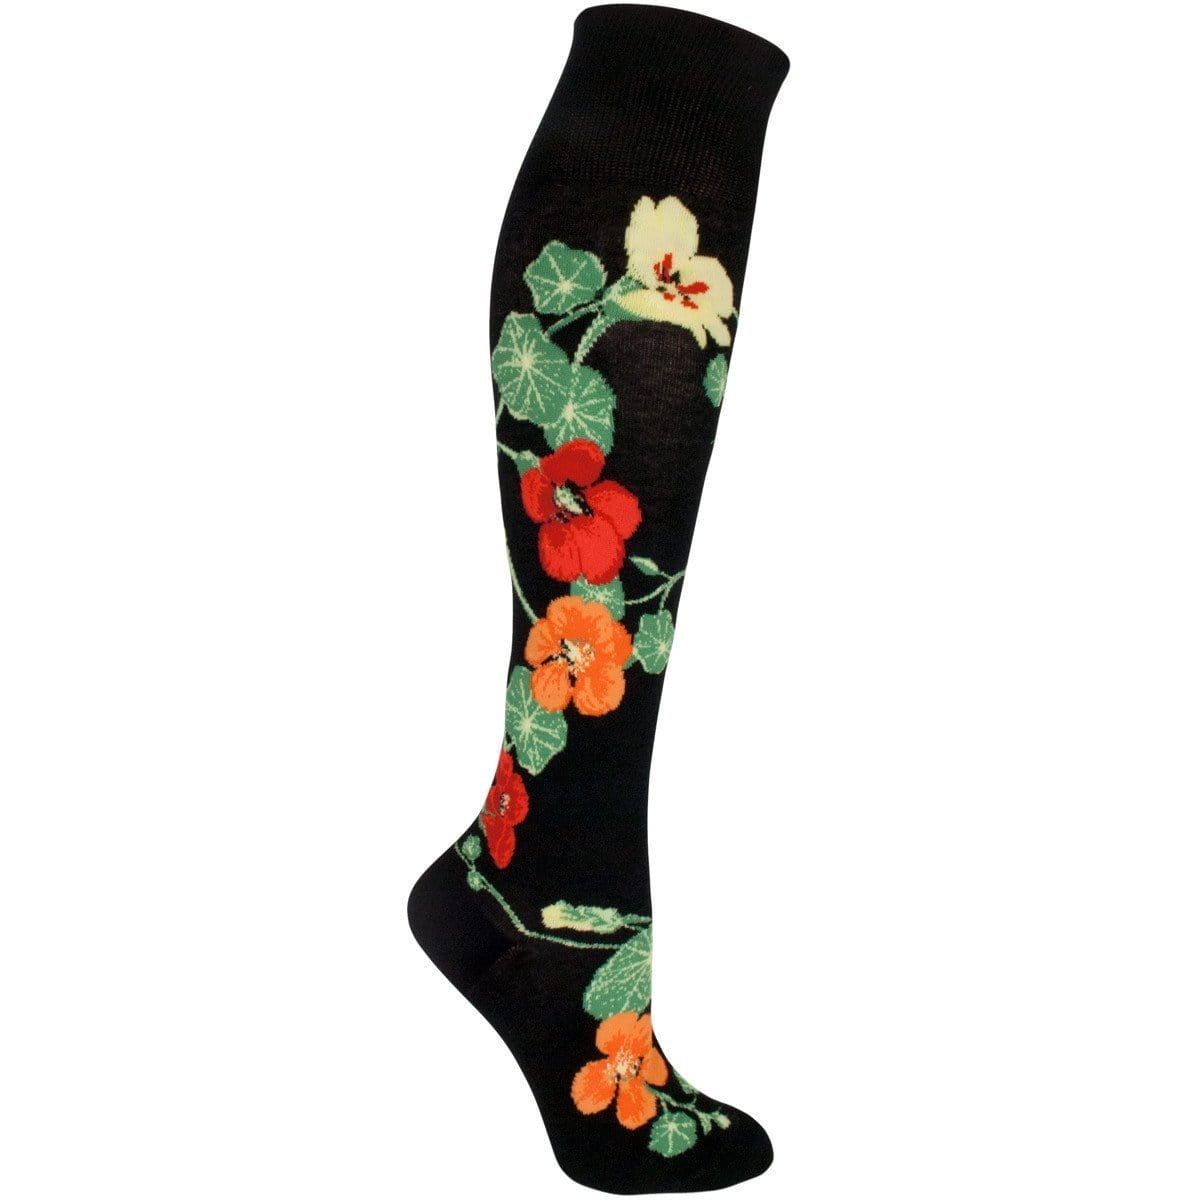 Nasturtiums Socks Women's Knee High Sock black